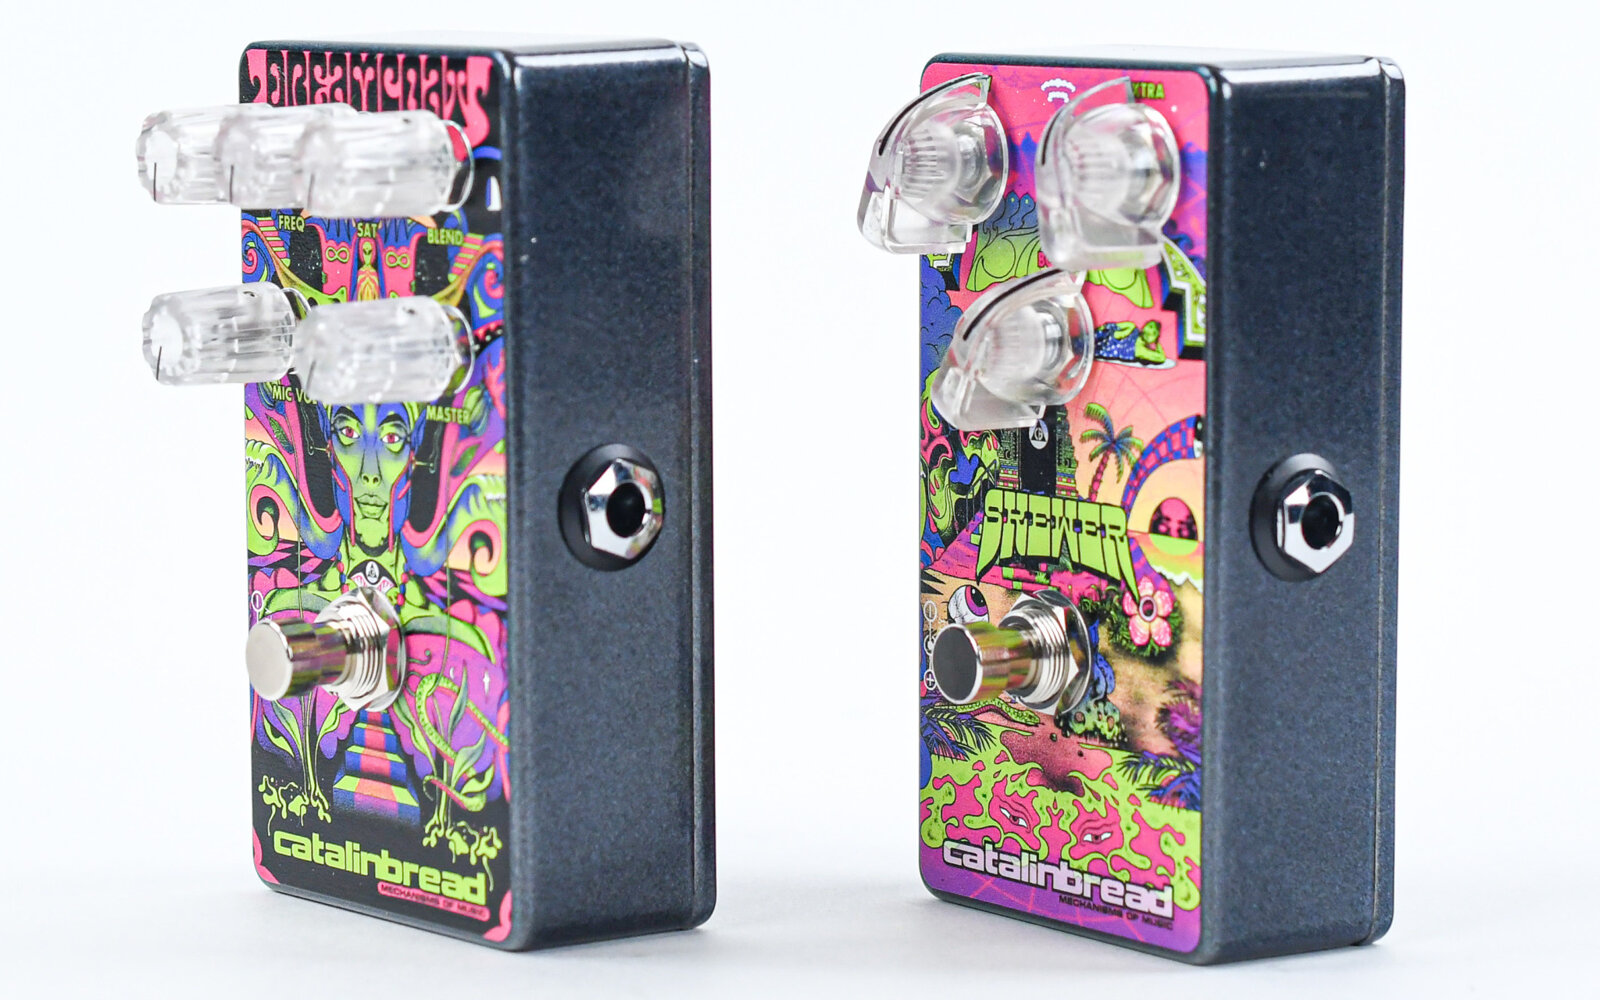 Catalinbread Dreamcoat Skewer Special Edition Box : photo 3